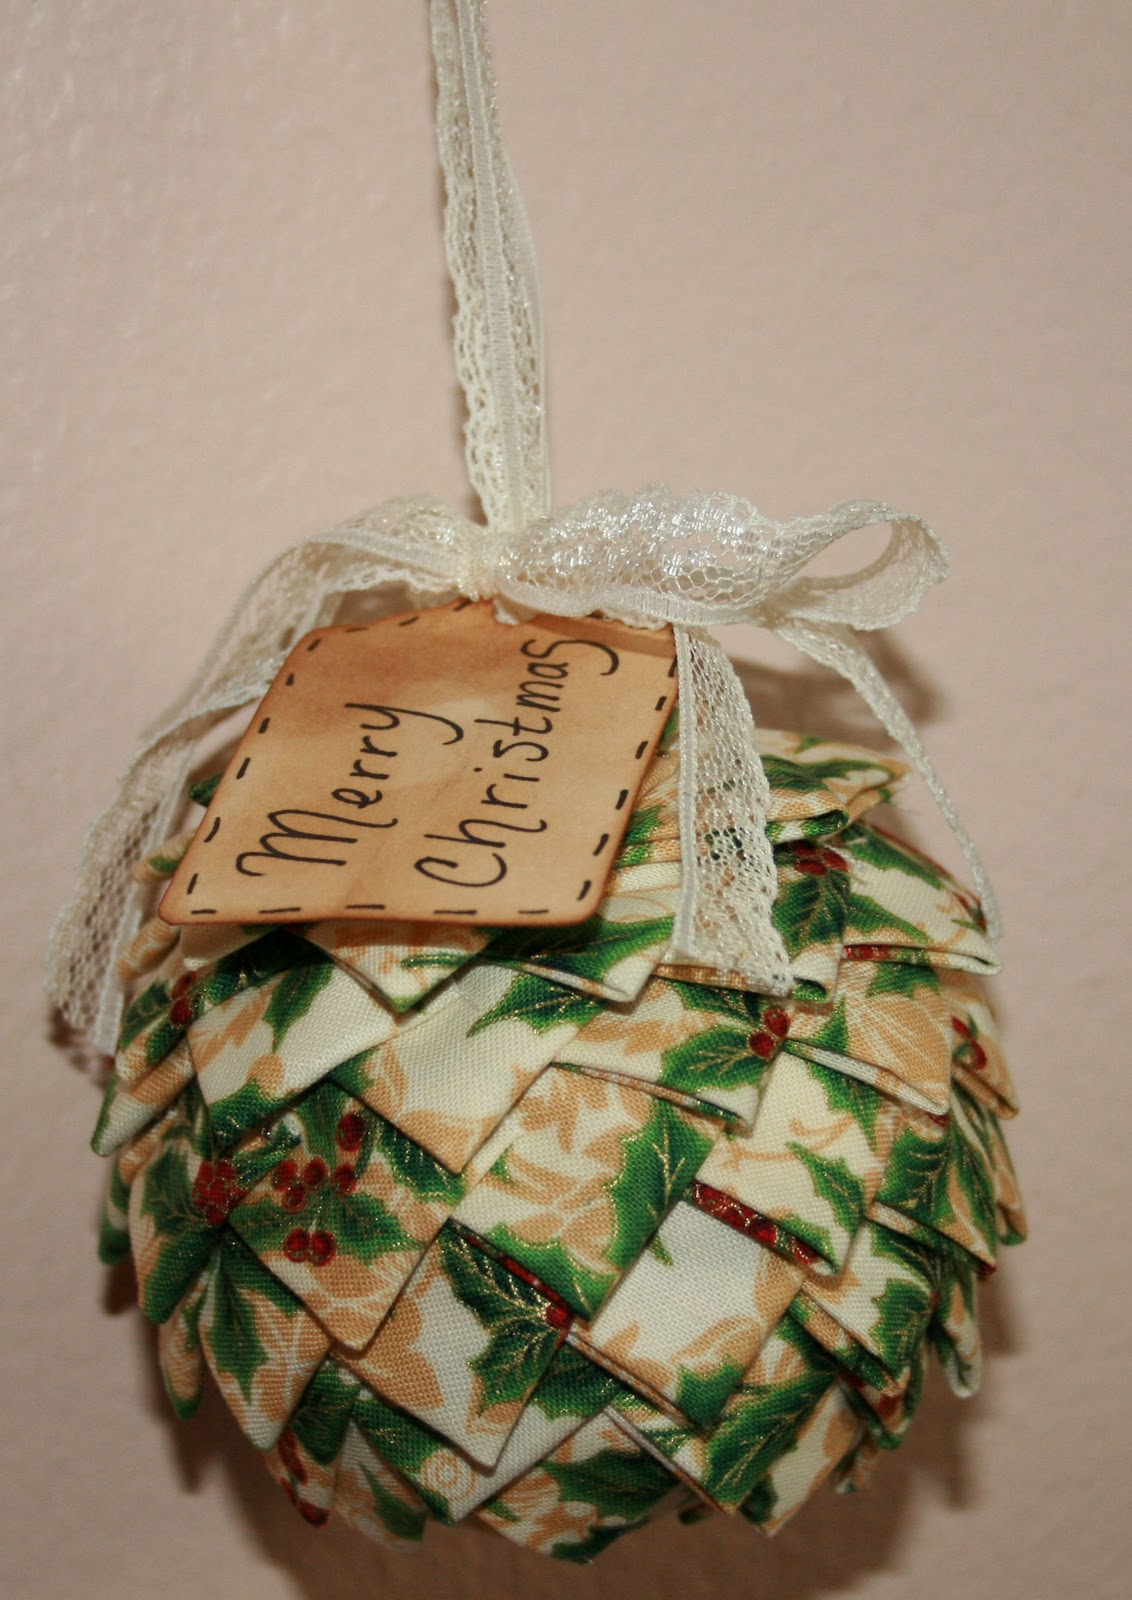 Fabric Ball Ornament With Old Fashioned Prim Tag And Vintage Lace It Is Made By Hand Lots Of Pins Looks Great Hanging In A Tree Or On An